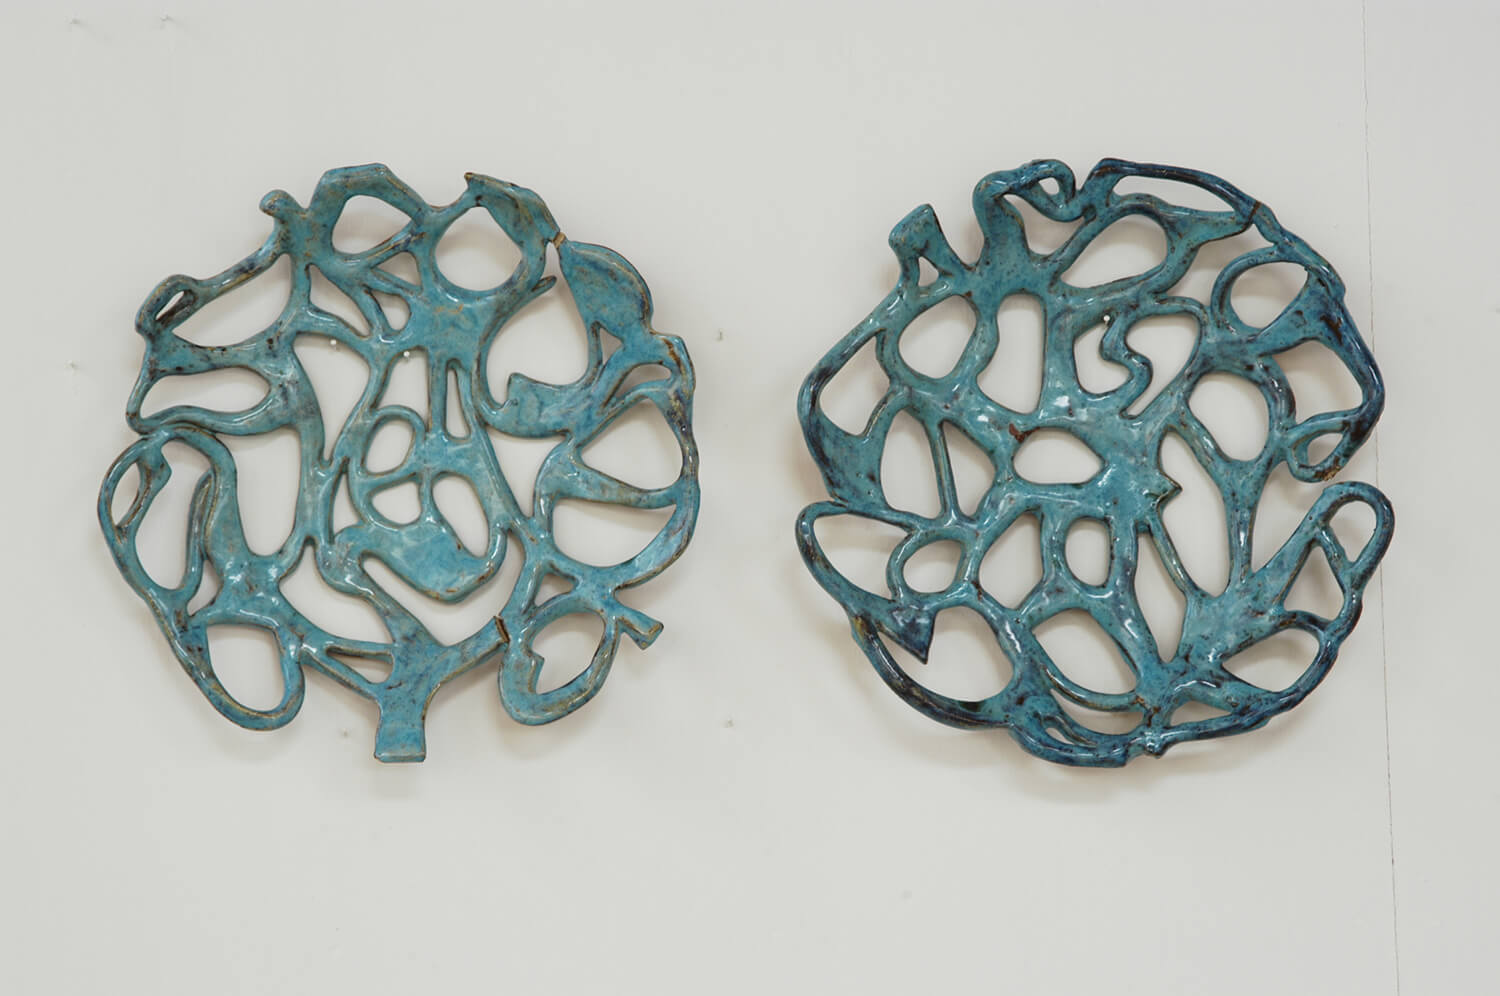 unravelling ceramic wall pieces